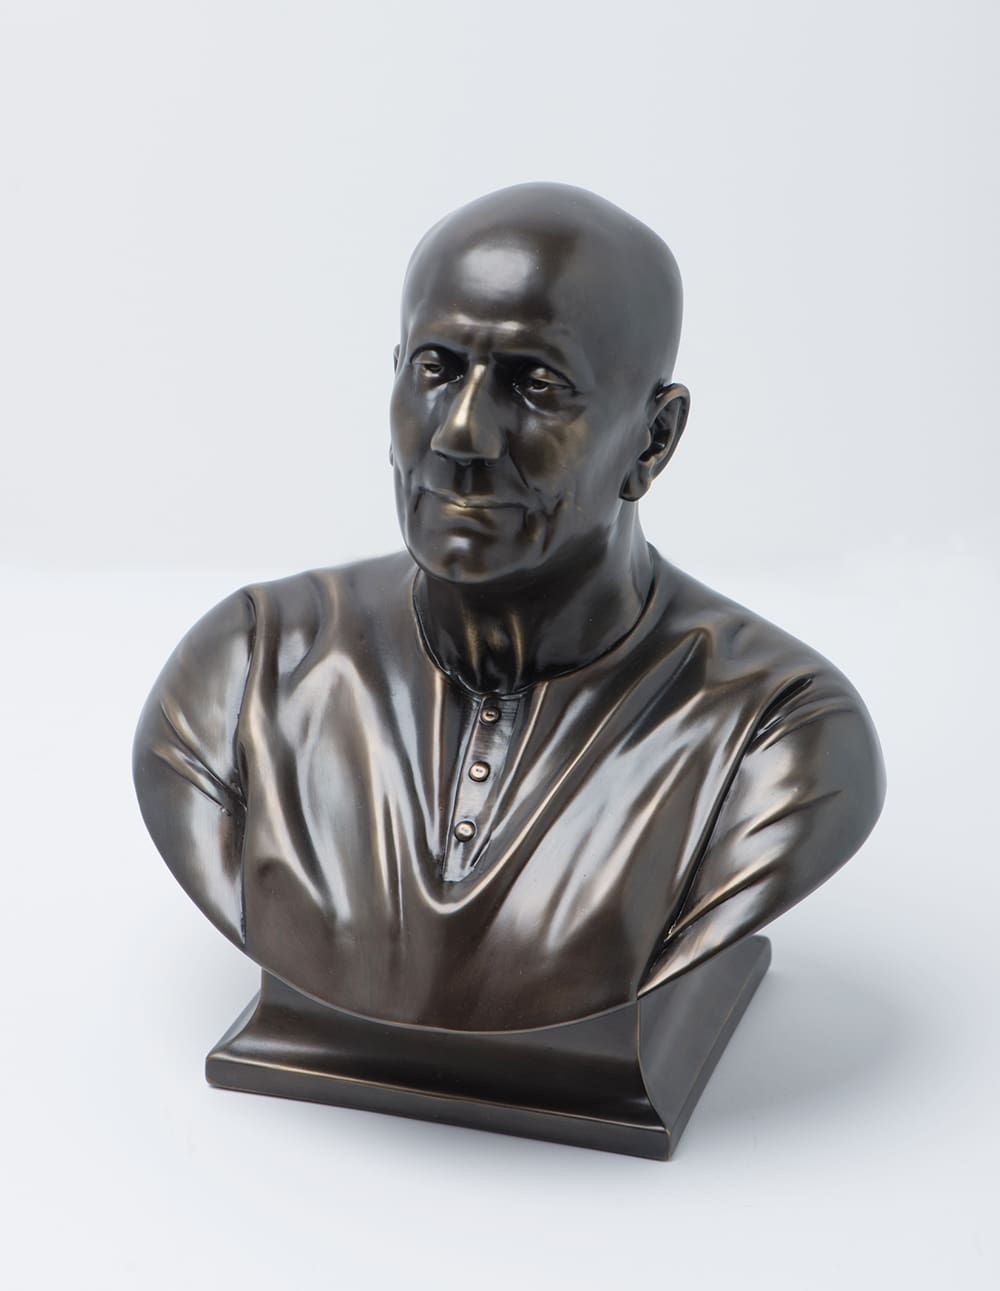 metal plated figure of a man from shoulders to head